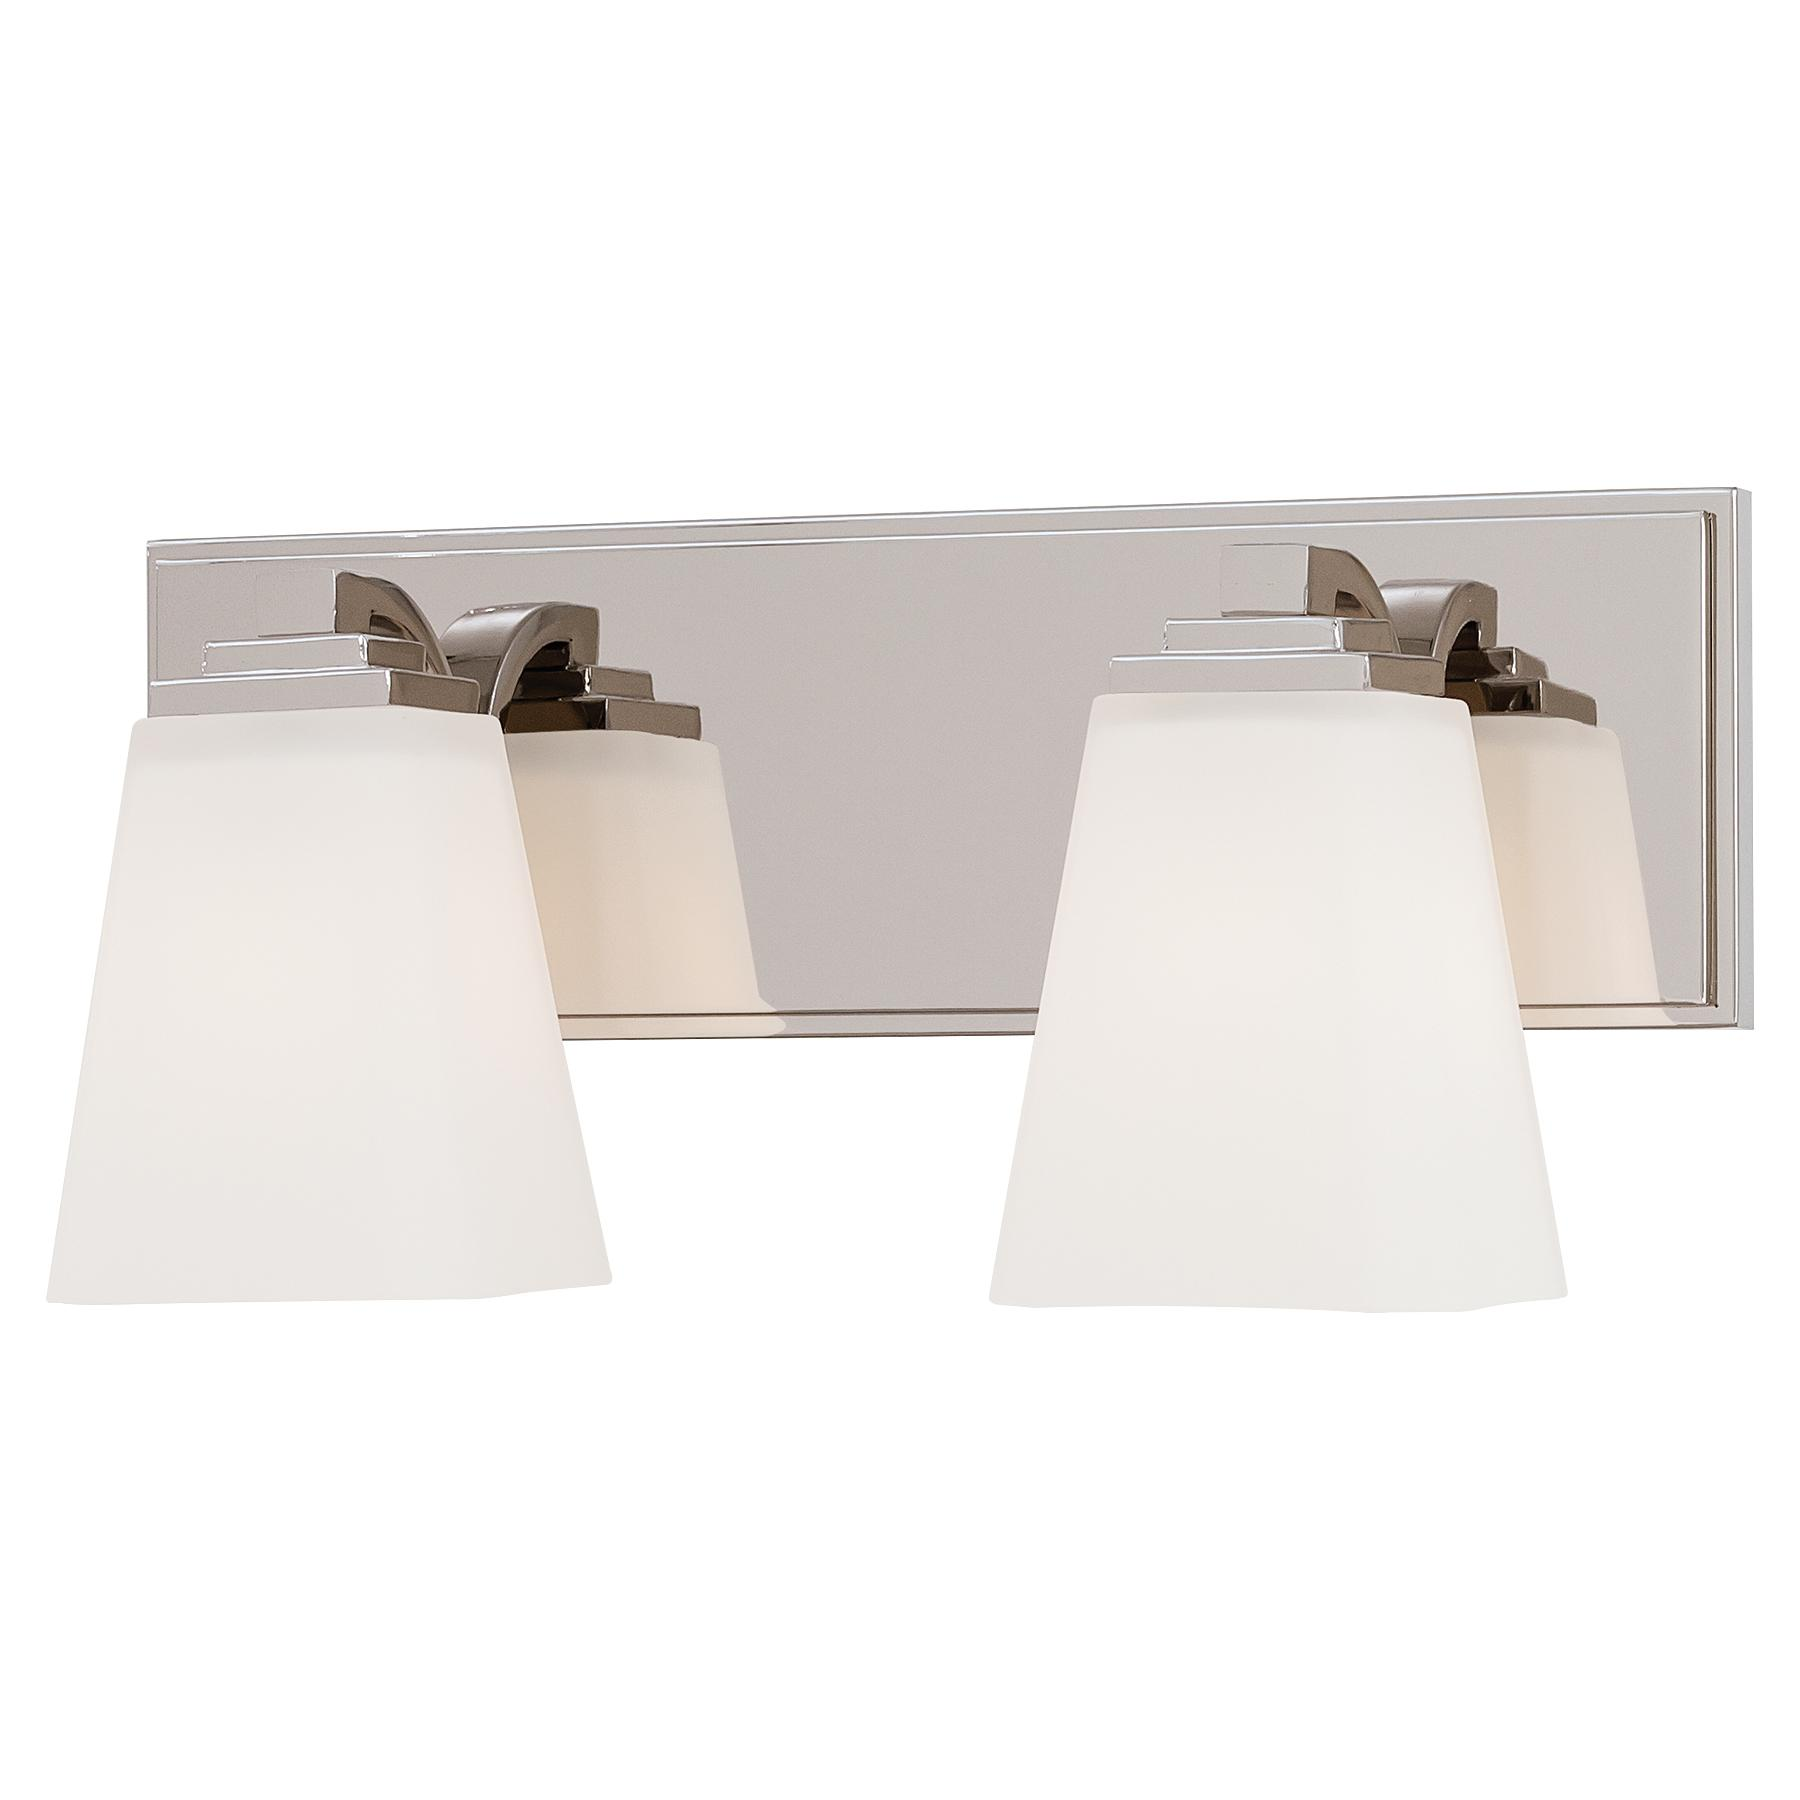 Bathroom Vanity Light By Minka Lavery - Minka lavery bathroom fixtures